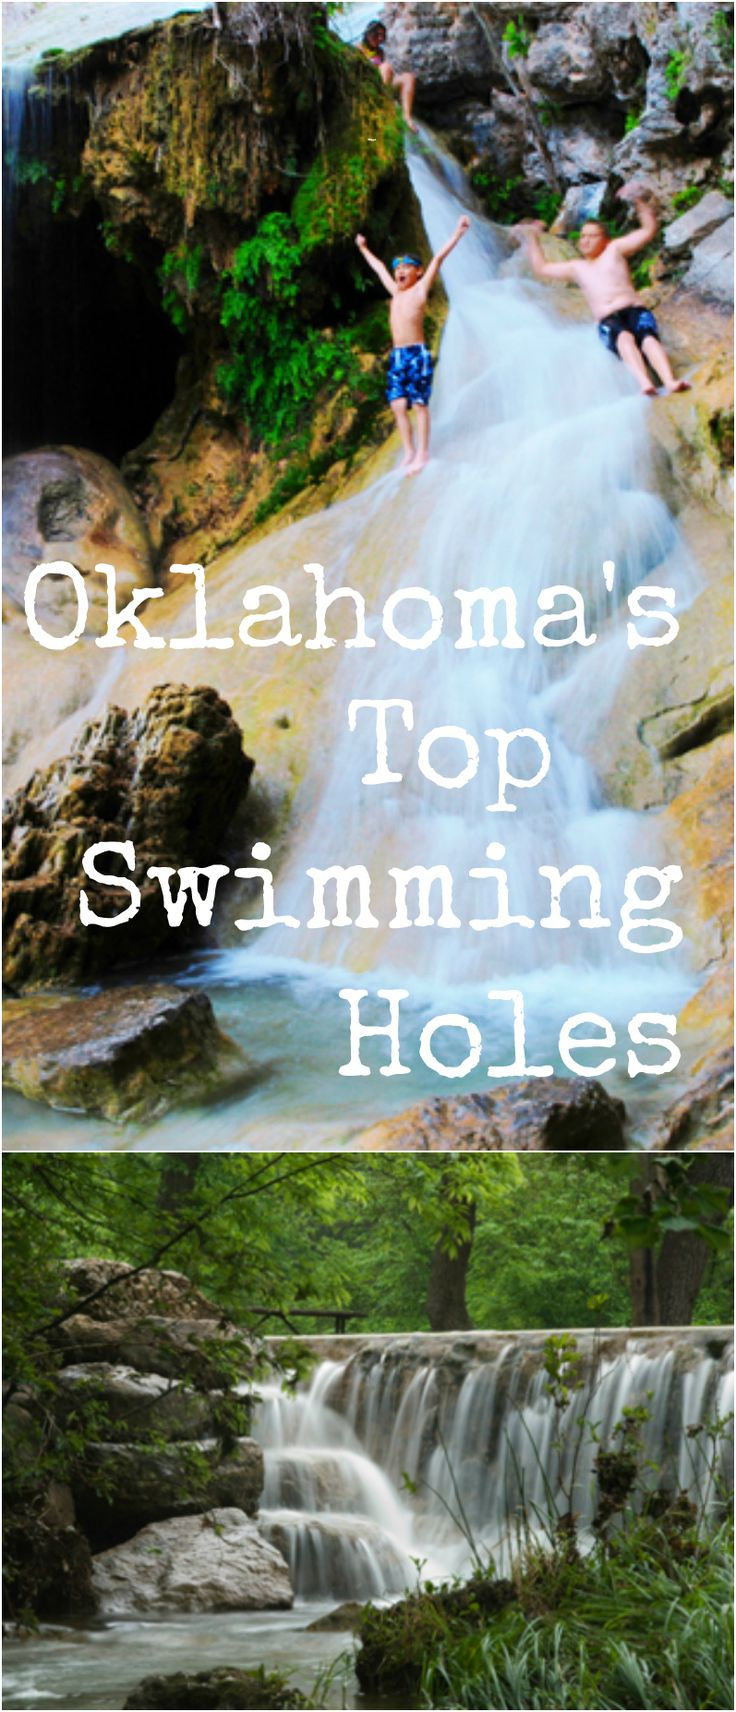 Trade in the traditional pools and water parks for a unique summer experience at one of Oklahoma's natural swimming holes.